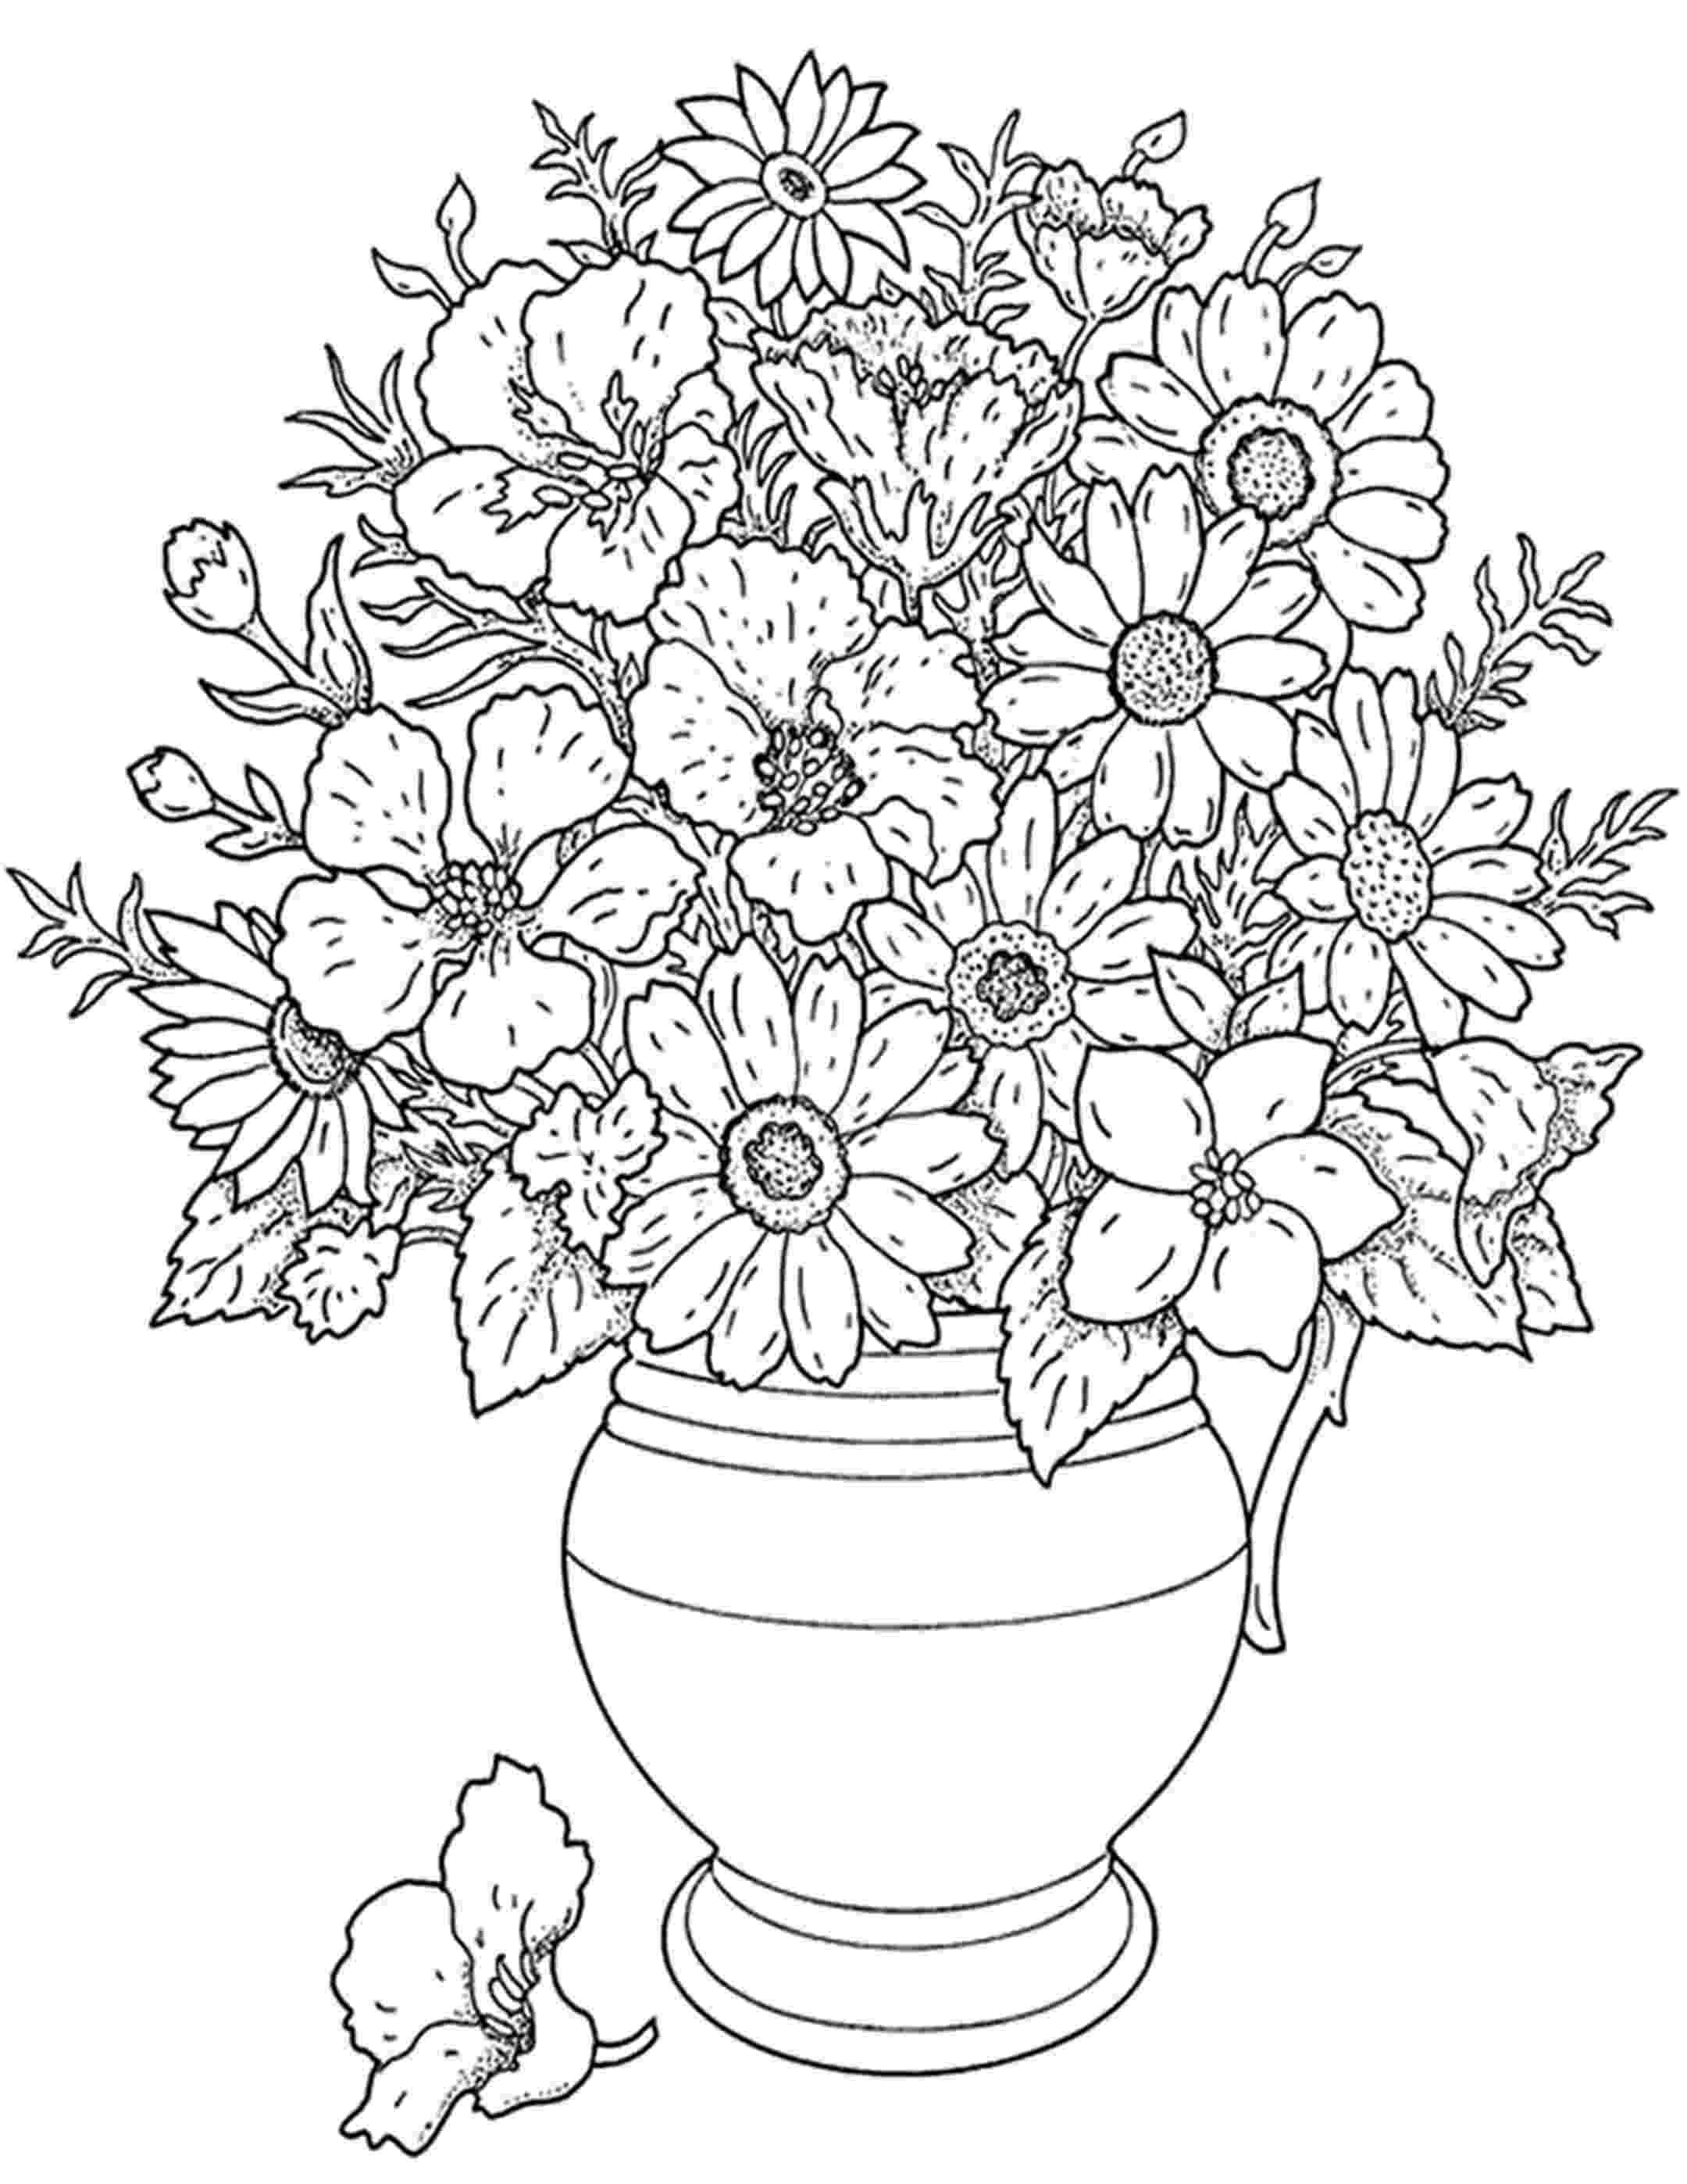 flower for coloring free printable flower coloring pages for kids best for coloring flower 1 1